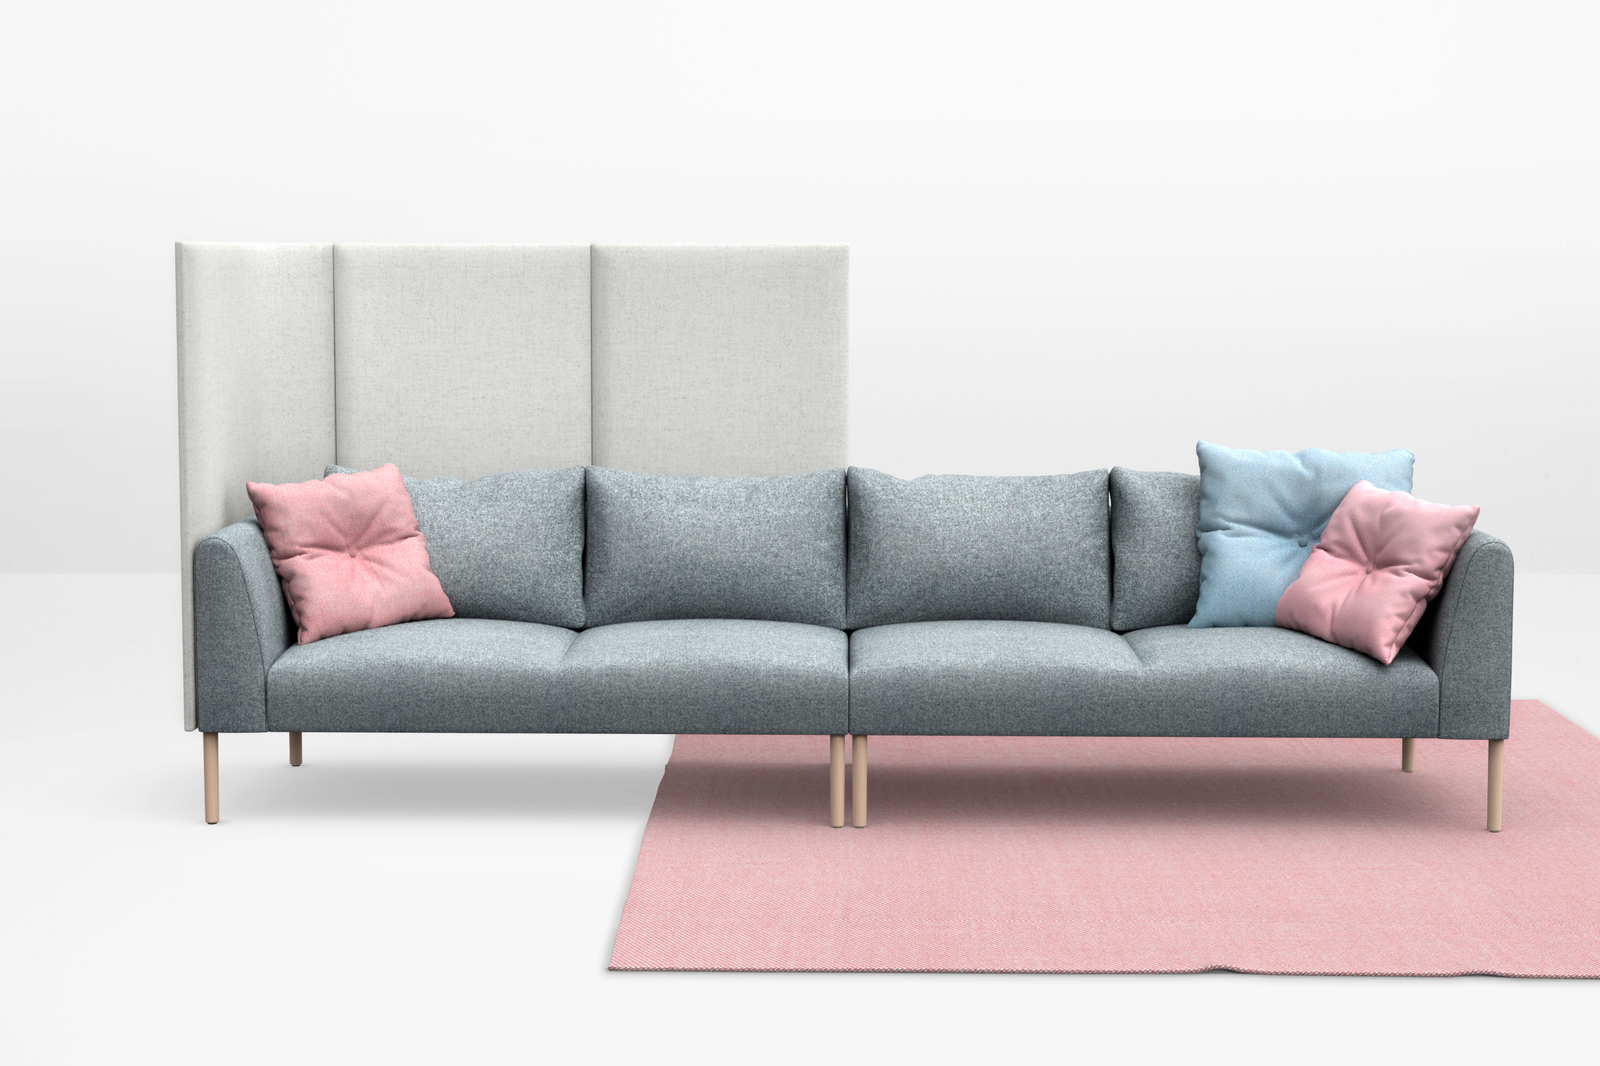 Full Size of Sofa Alternatives Cheap Ikea Best Bed Reddit Couch For Small Spaces Togo Sleeper Uk Living Room To Sofas Crossword Nooa Contract Furniture Garnitur 2 Teilig Sofa Sofa Alternatives